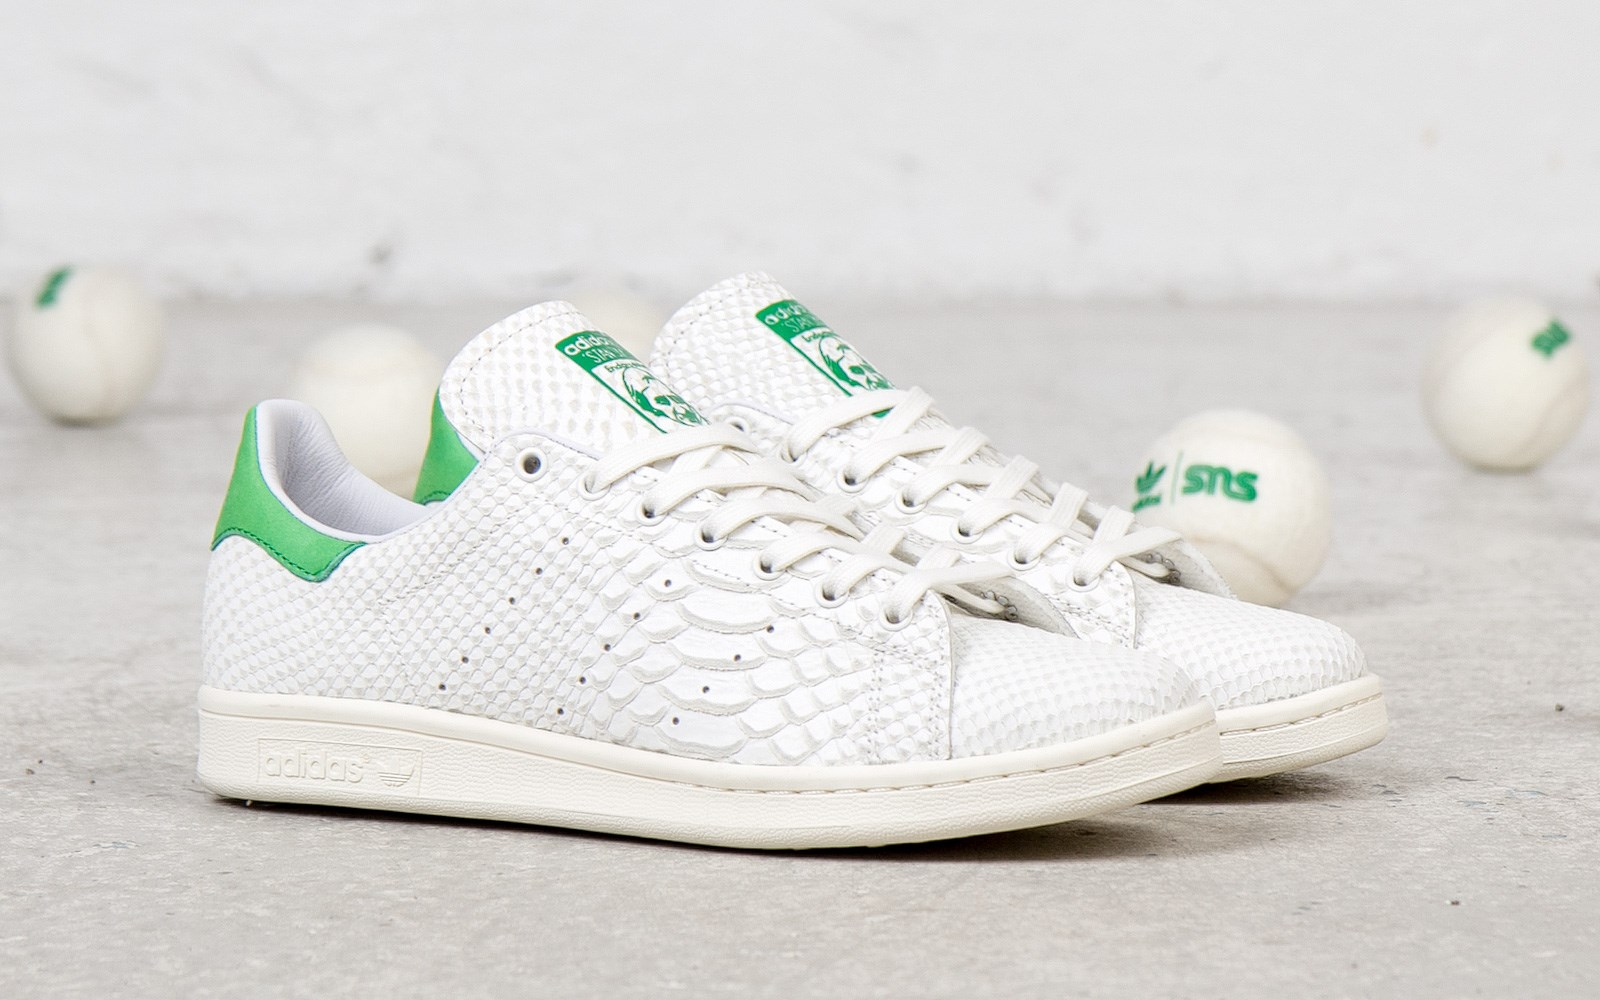 adidas originals consortium stan smith 39 reptile leather 39 detailed images sneakerfiles. Black Bedroom Furniture Sets. Home Design Ideas